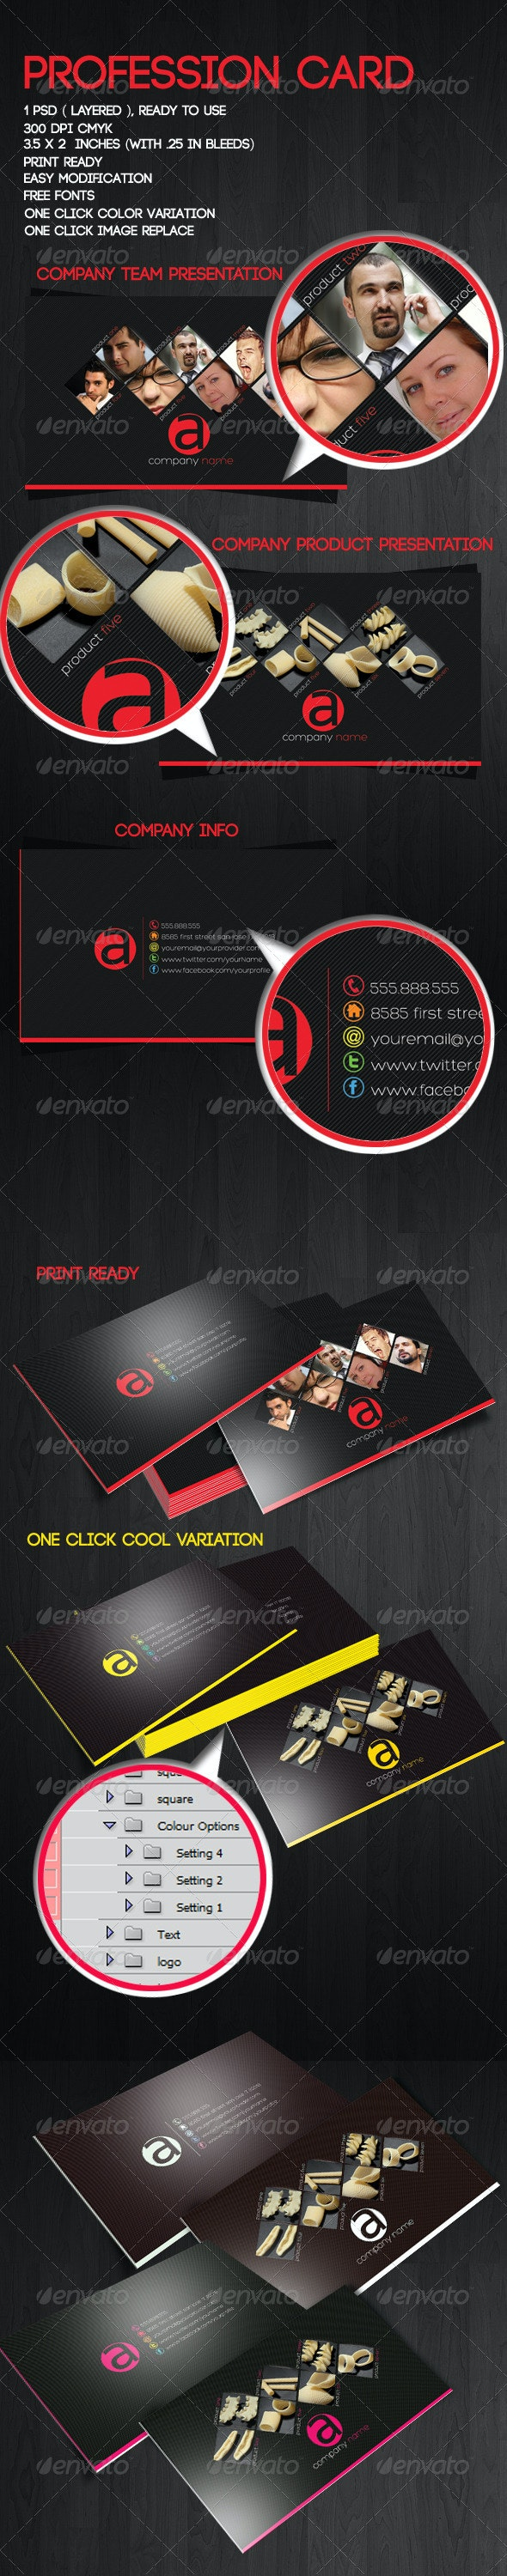 Profession Card Template - Corporate Business Cards